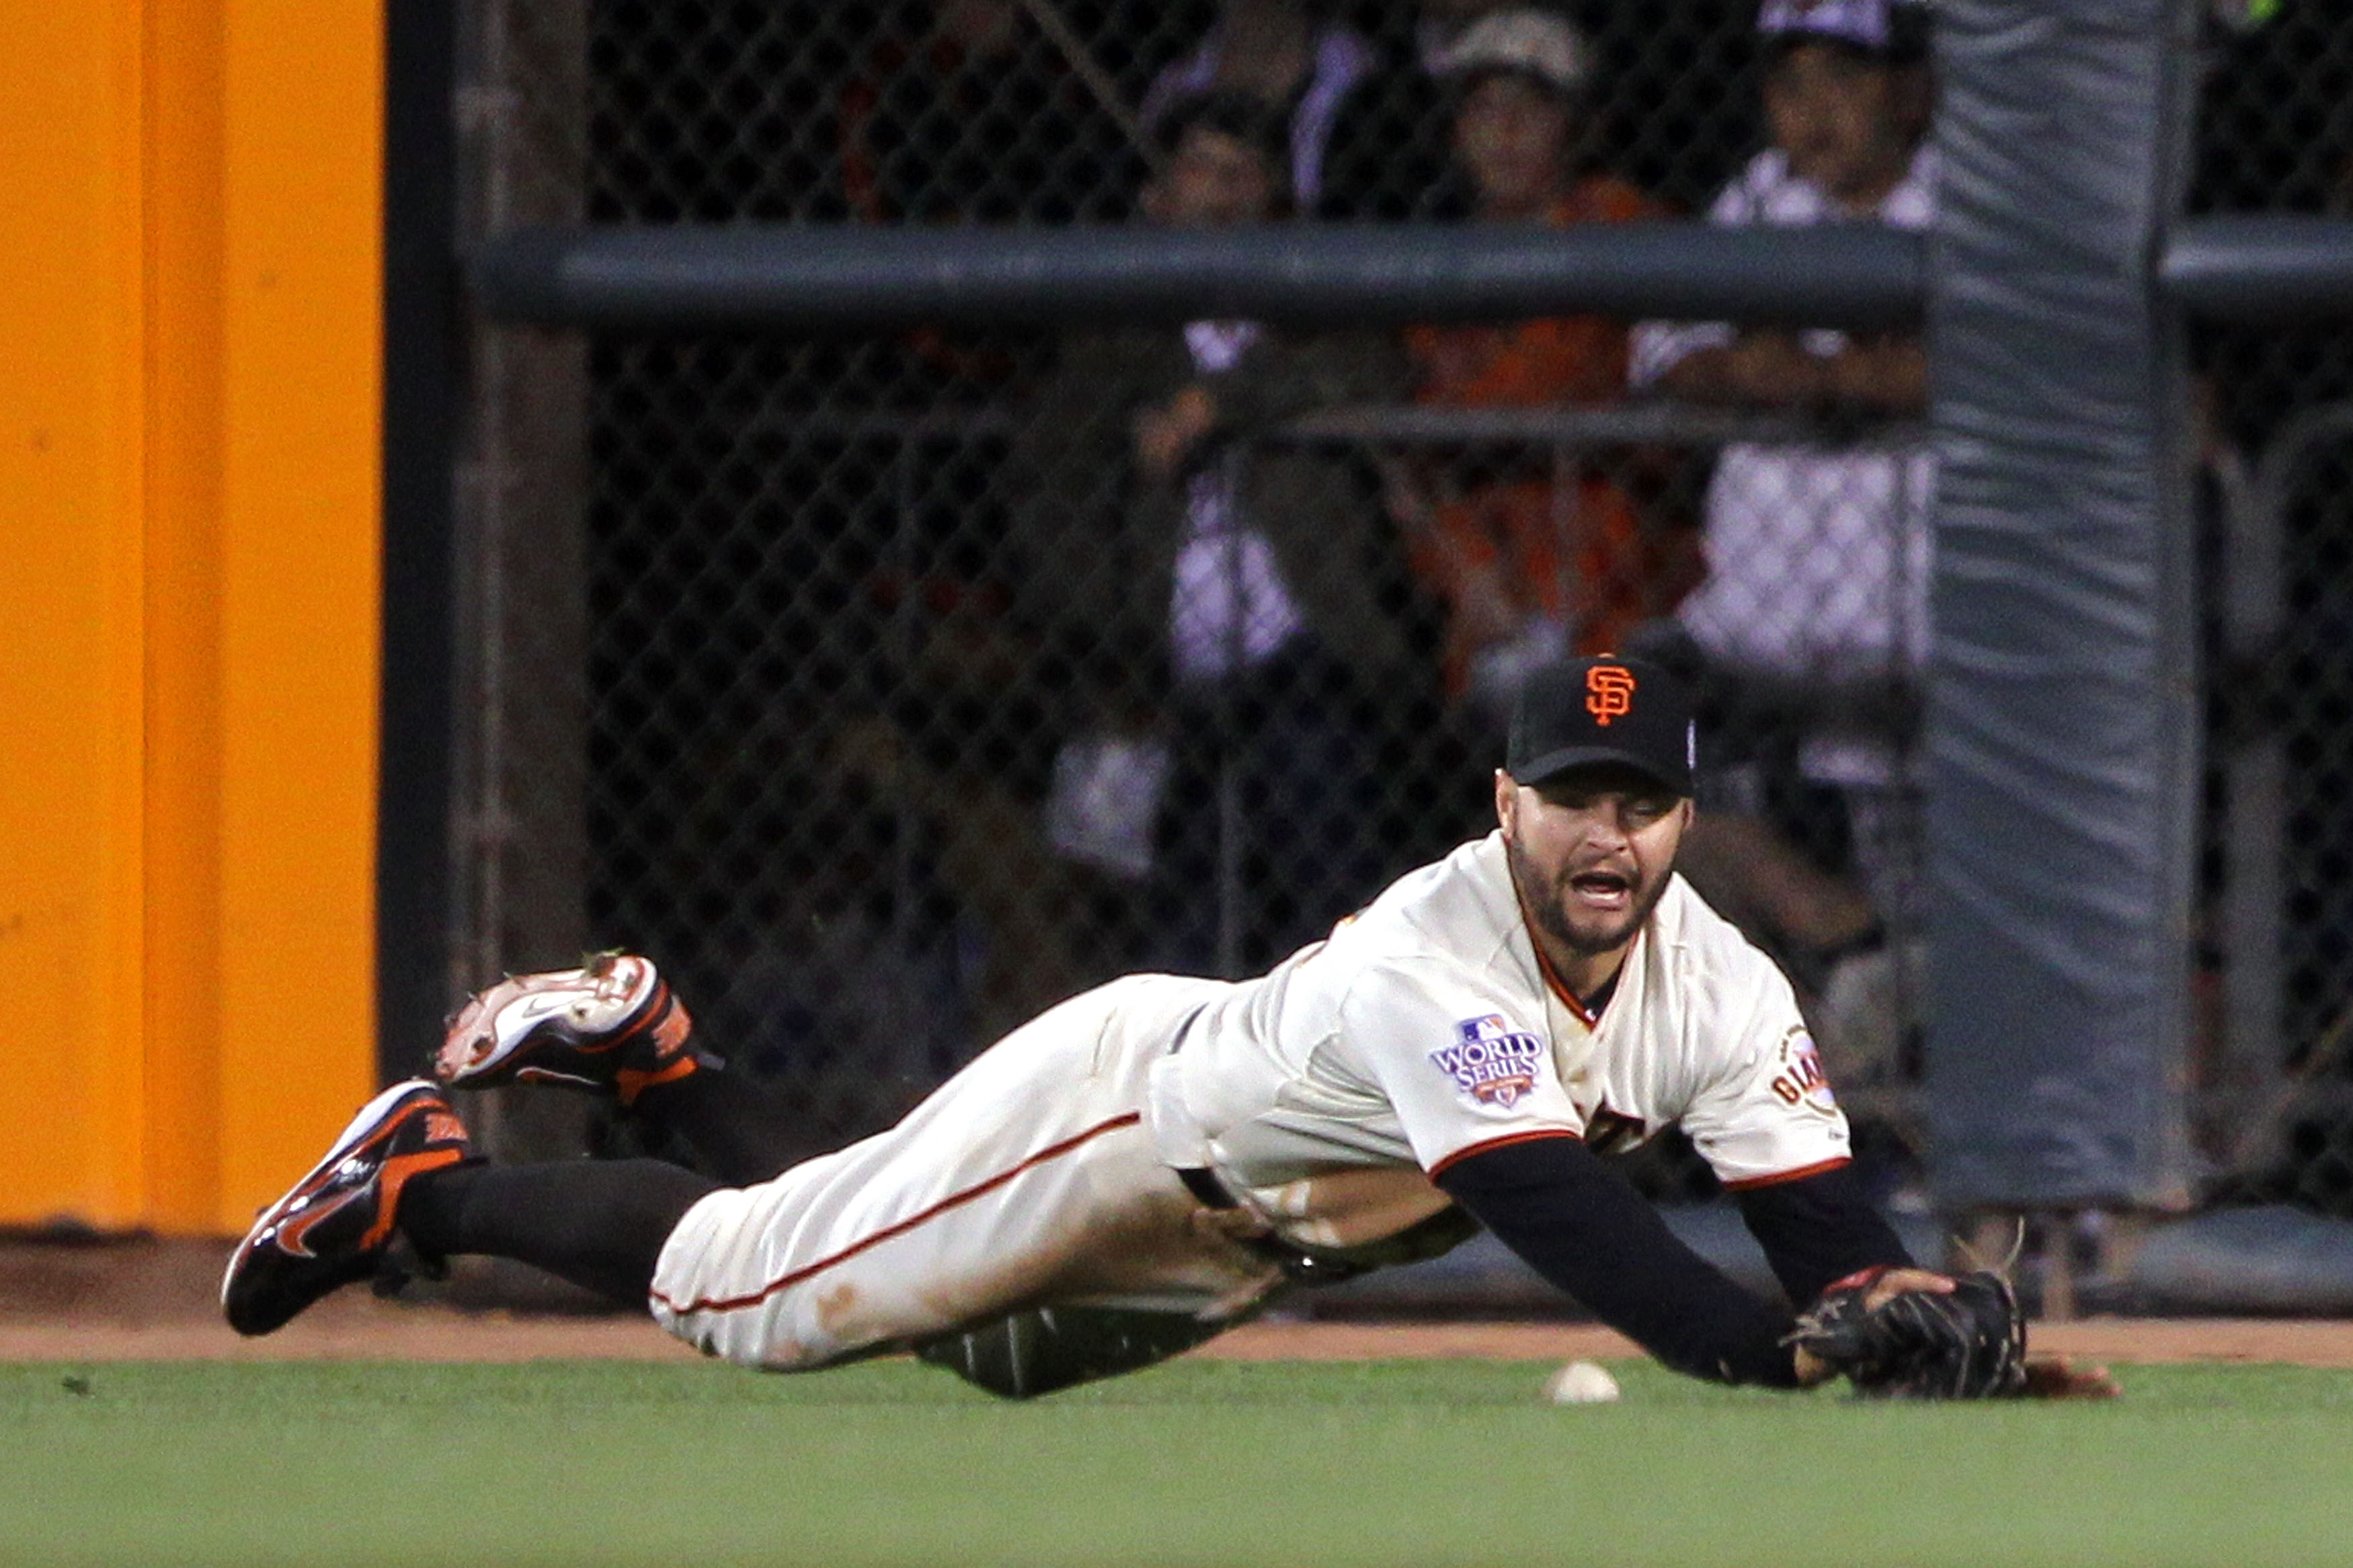 SAN FRANCISCO - OCTOBER 28:  Cody Ross #13 of the San Francisco Giants is unable to catch a ball hit by Josh Hamilton #32 of the Texas Rangers leading to single for Hamilton in the sixth inning of Game Two of the 2010 MLB World Series at AT&T Park on Octo